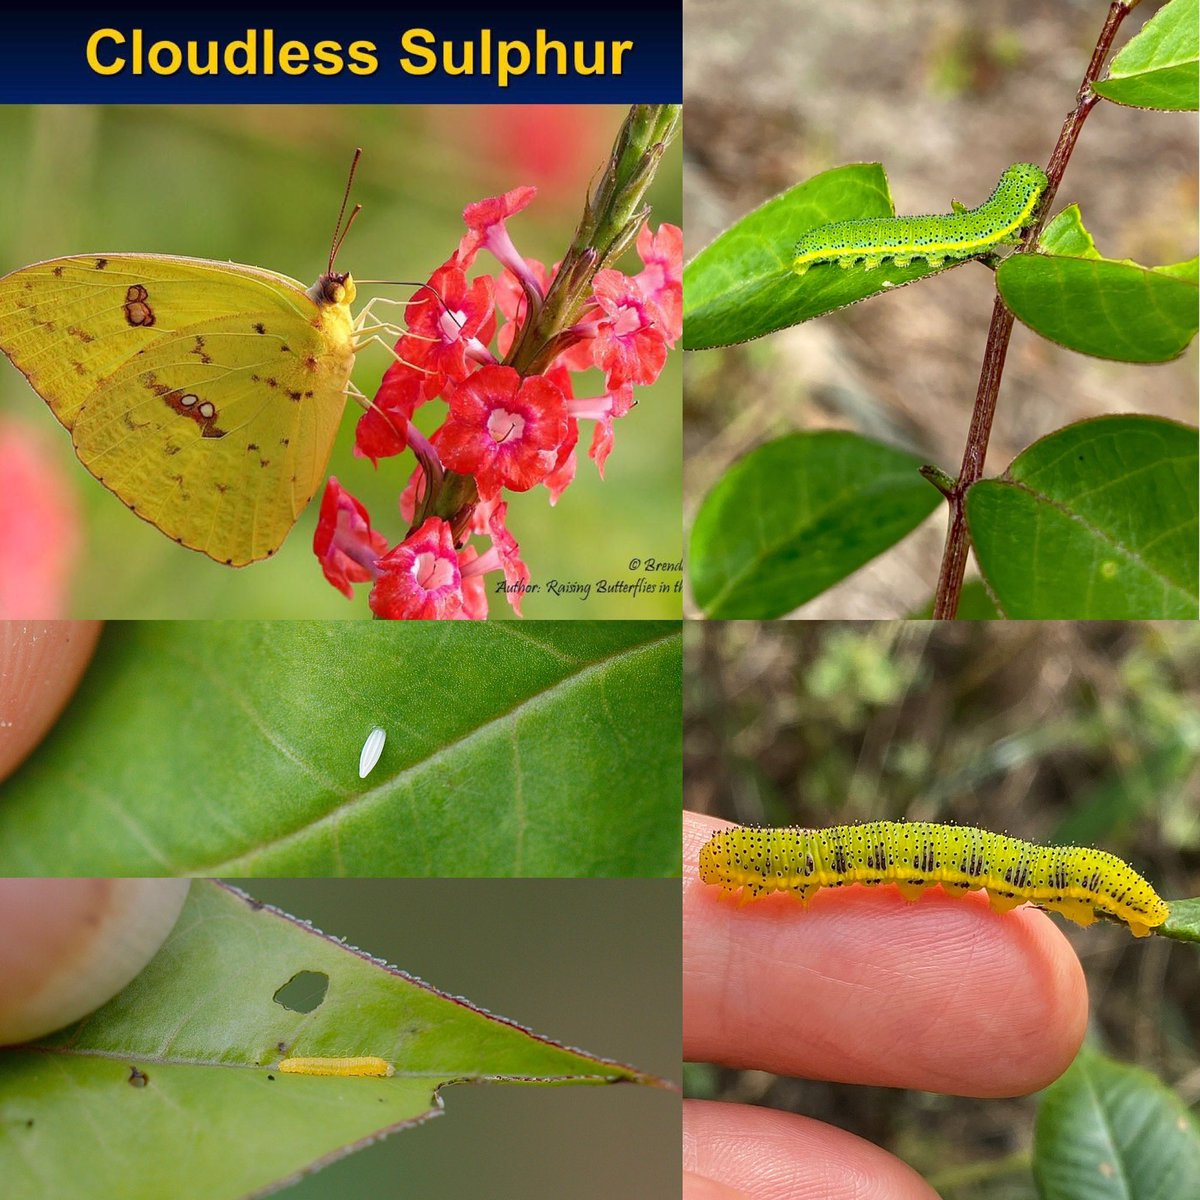 Cloudless Sulphur (Phoebis sennae) caterpillars can be green or yellow depending on what part of the plant they eat. Their host plants are various species in the genera Chamaecrista and Senna in the pea family (Fabaceae). https://t.co/KvfrBoGnMi